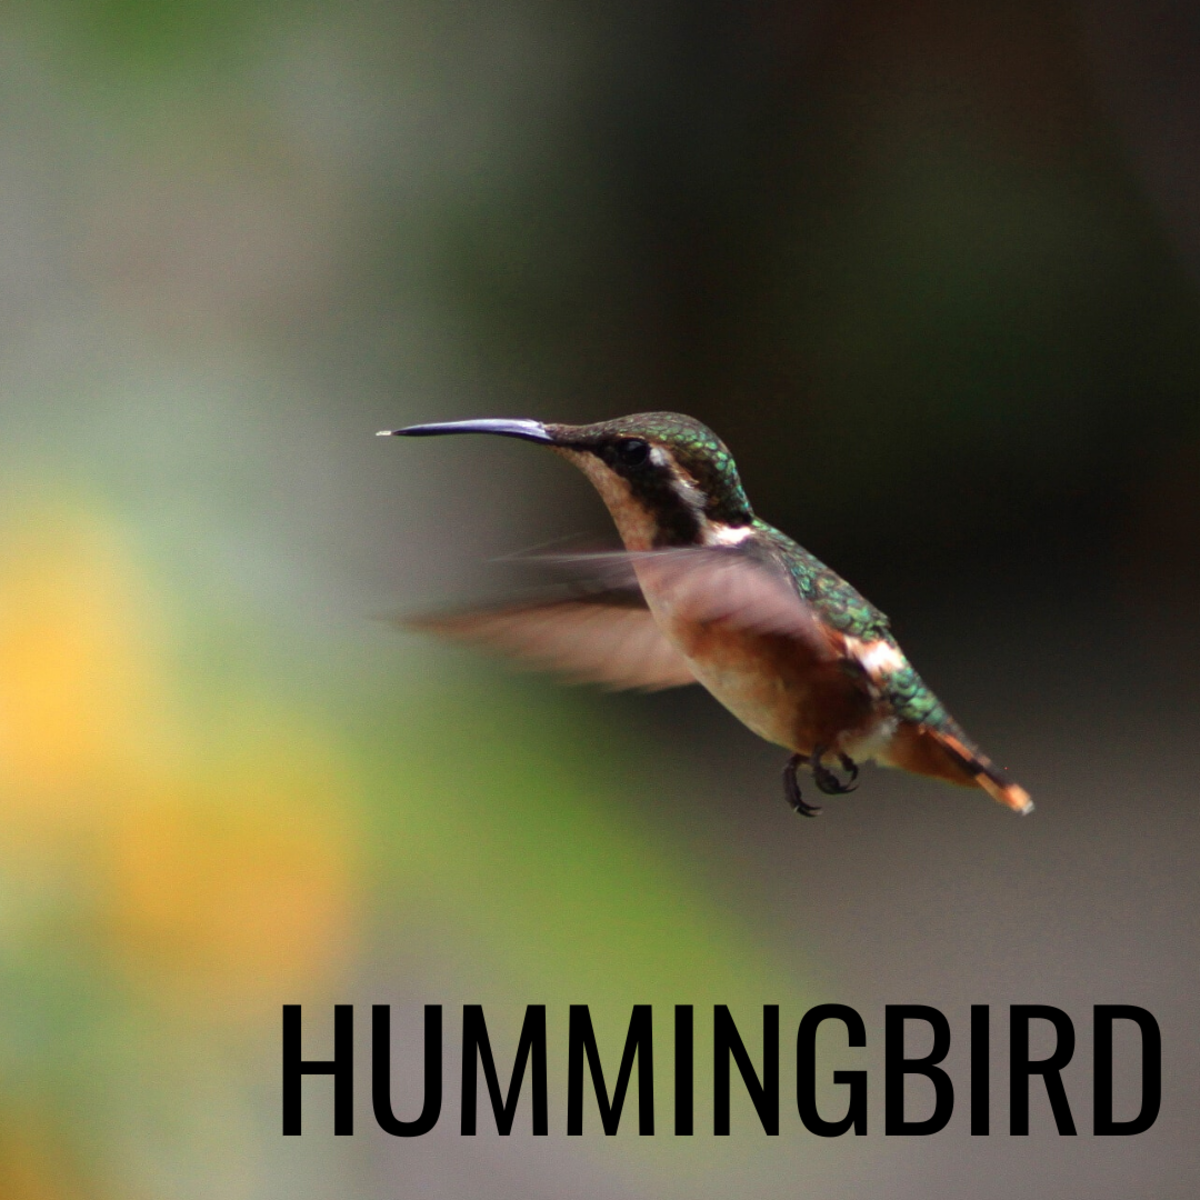 Hummingbirds symbolize love and joy.